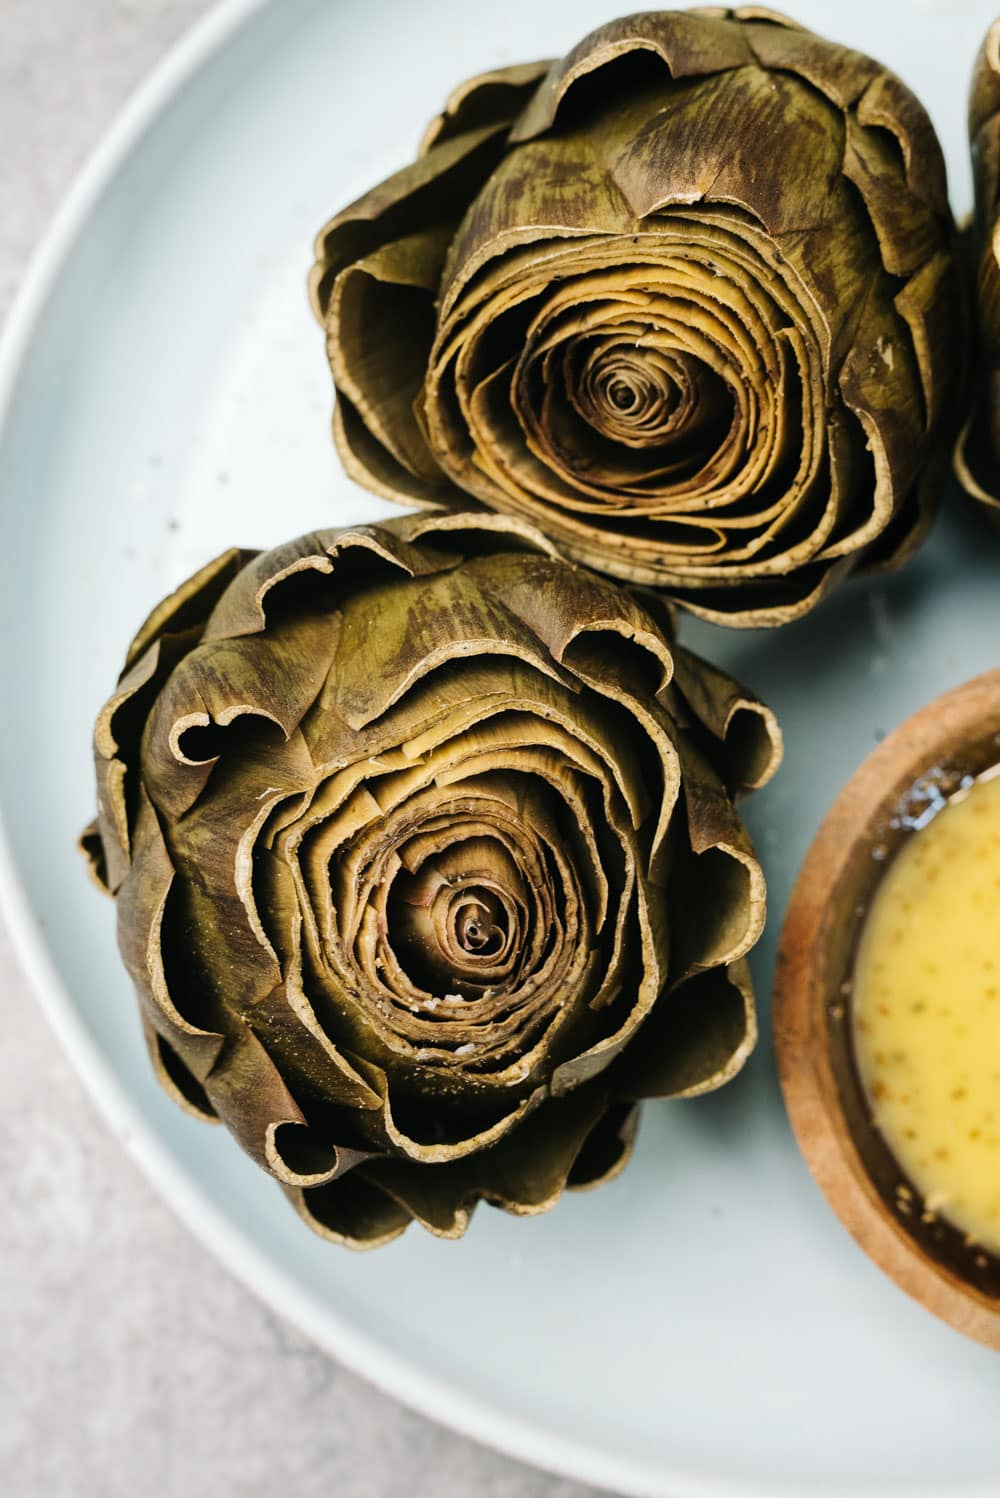 Two steamed artichokes cooked in the instant pot on a blue plate with a small bowl of lemon dipping sauce.